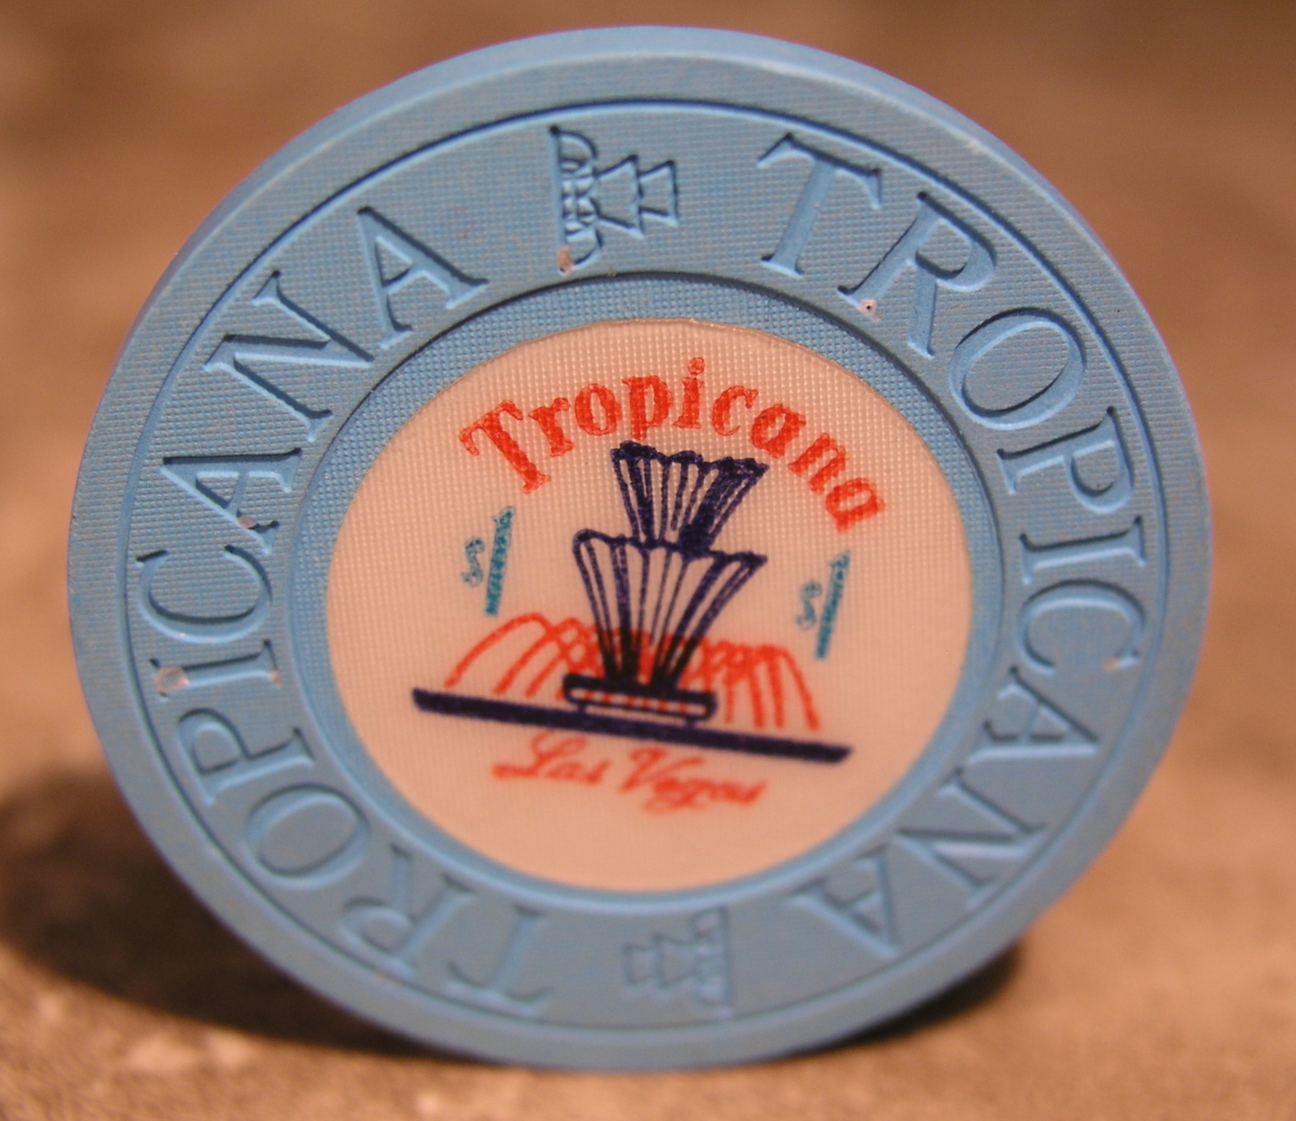 "Primary image for $1.00 Casino Chip From: ""Tropicana Hotel & Casino""- (sku#2454)"